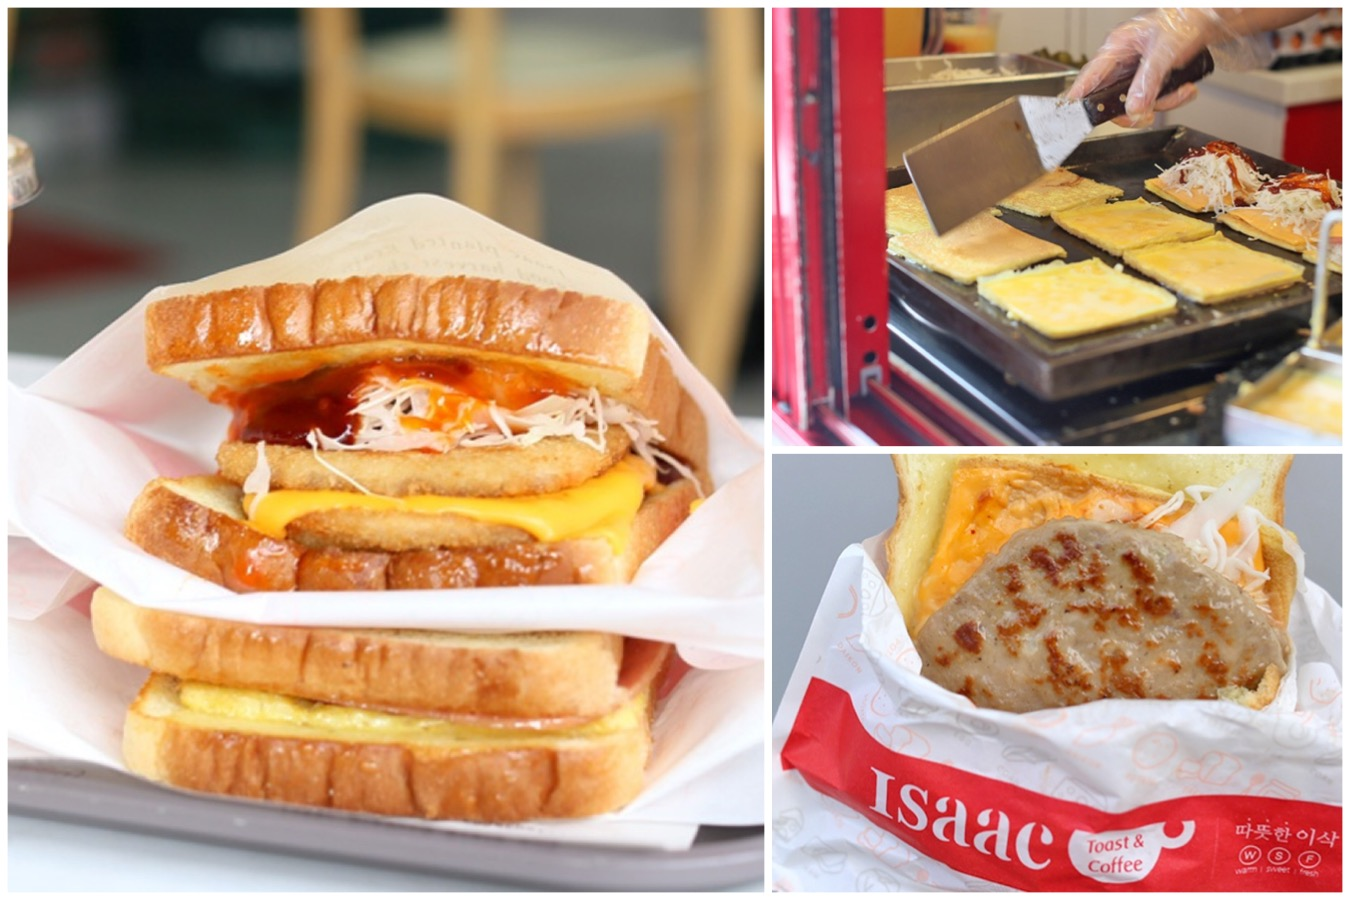 Isaac Toast The Most Popular Korean Breakfast Toast In Seoul Also